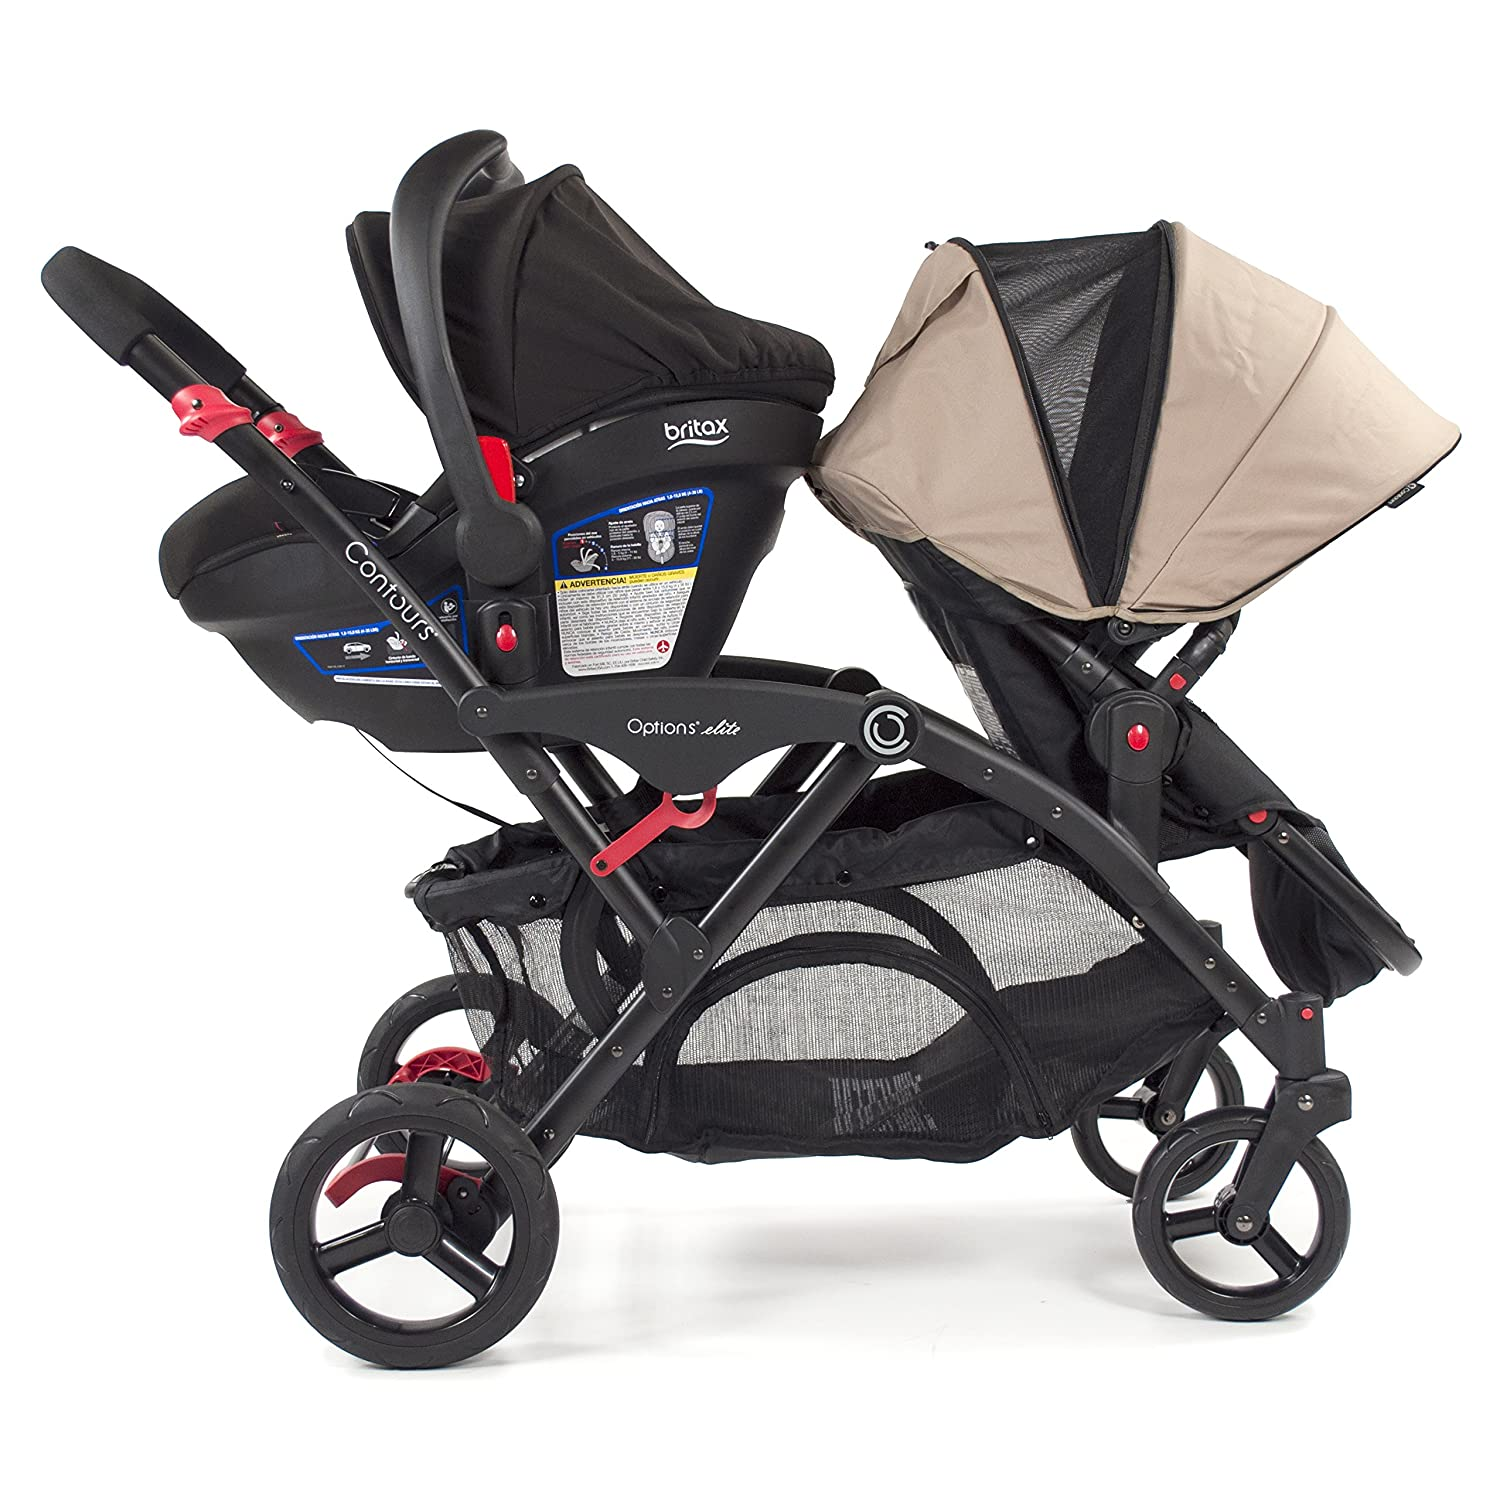 stroller carseat combo babies r us stroller carseat combo babies r us brands that start with m. Black Bedroom Furniture Sets. Home Design Ideas